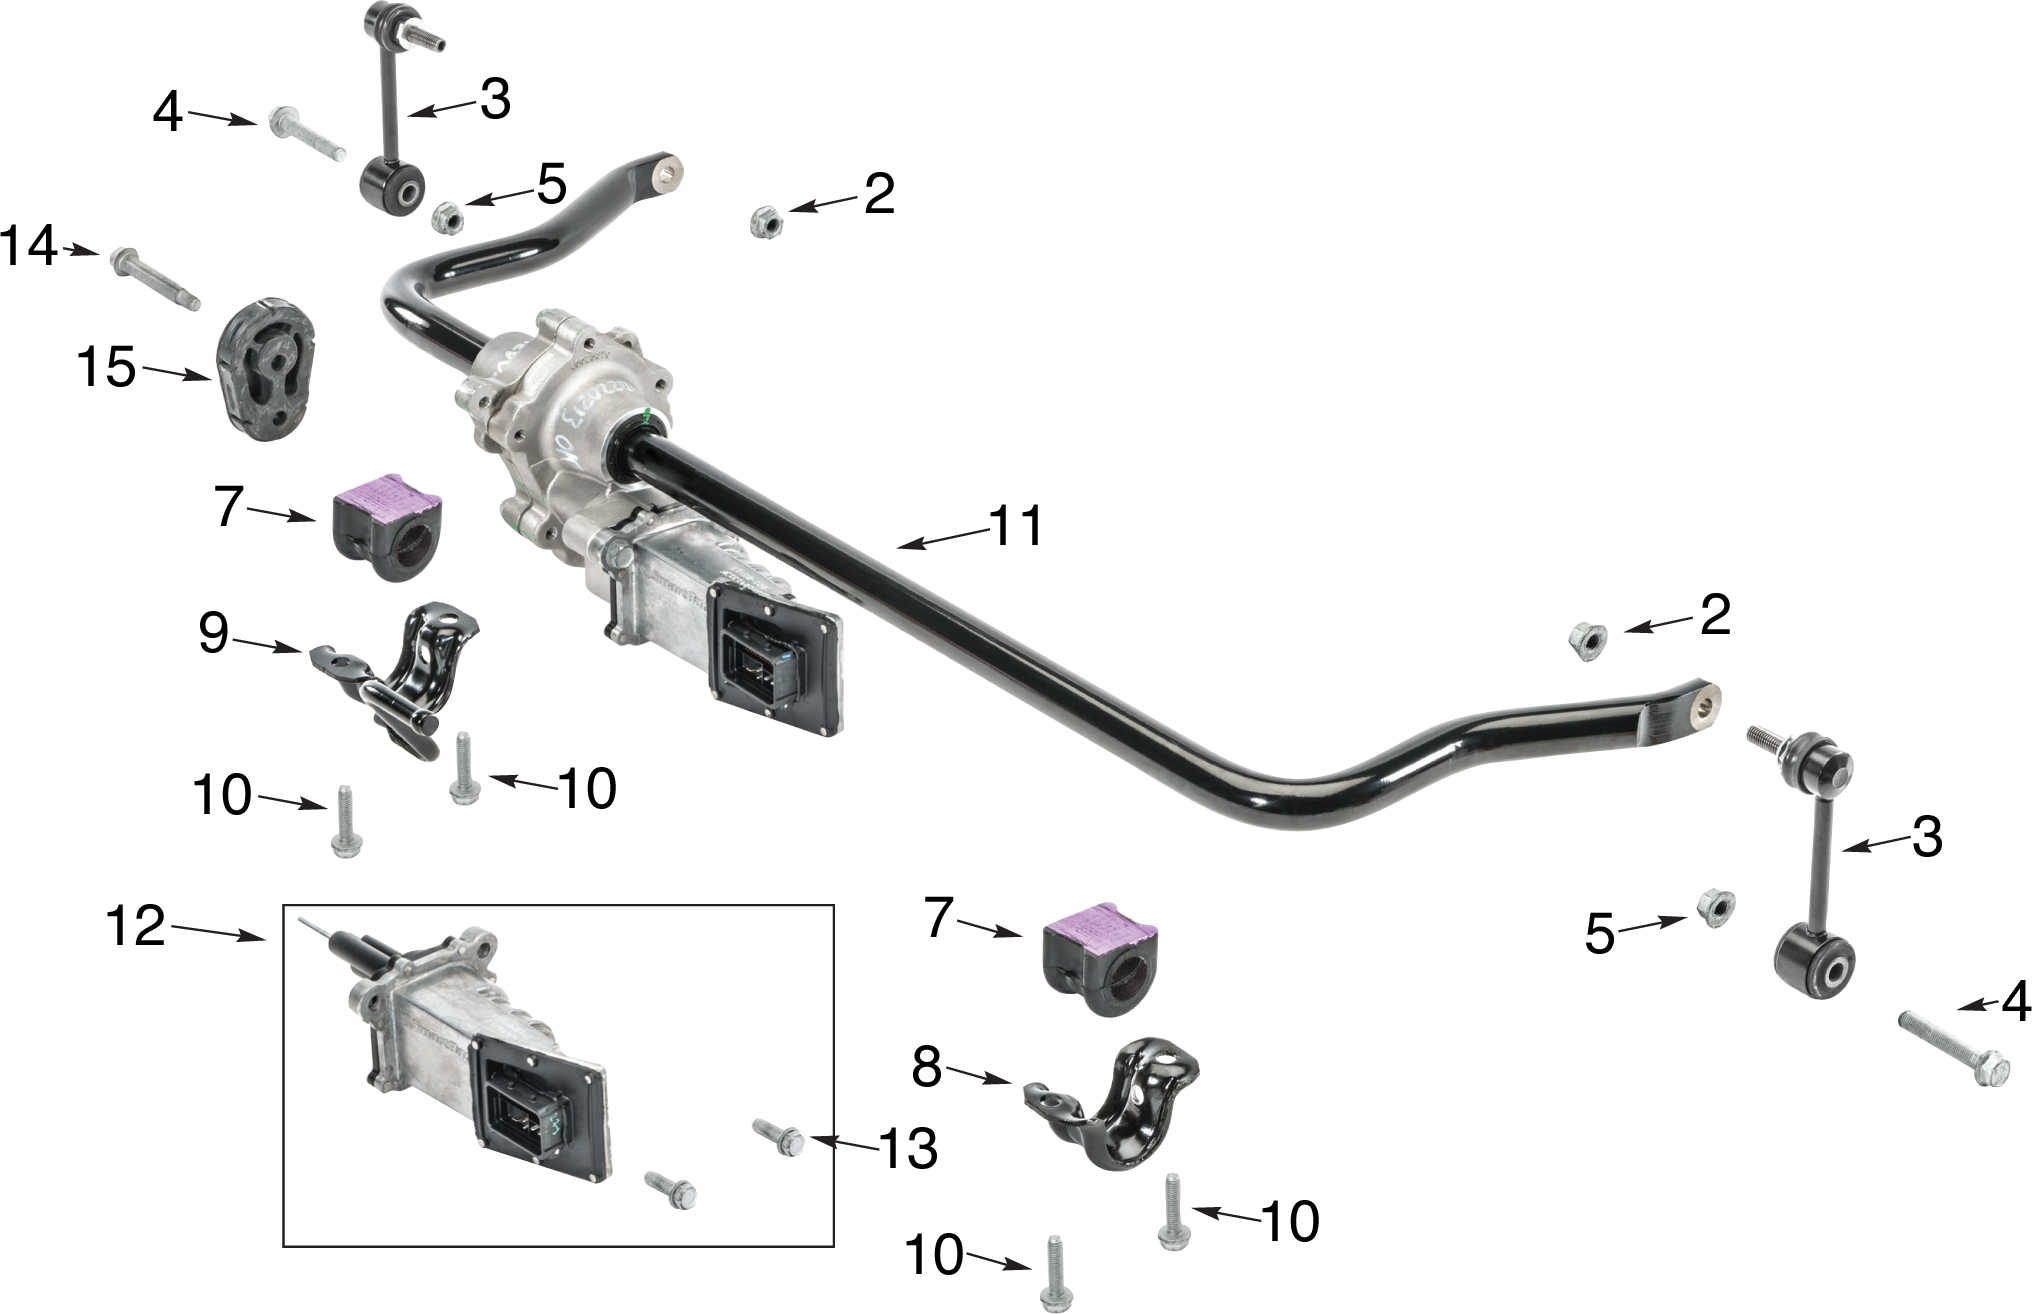 2001 chevy impala exhaust system diagram orbital for sulfur 2000 camaro parts catalog imageresizertool com